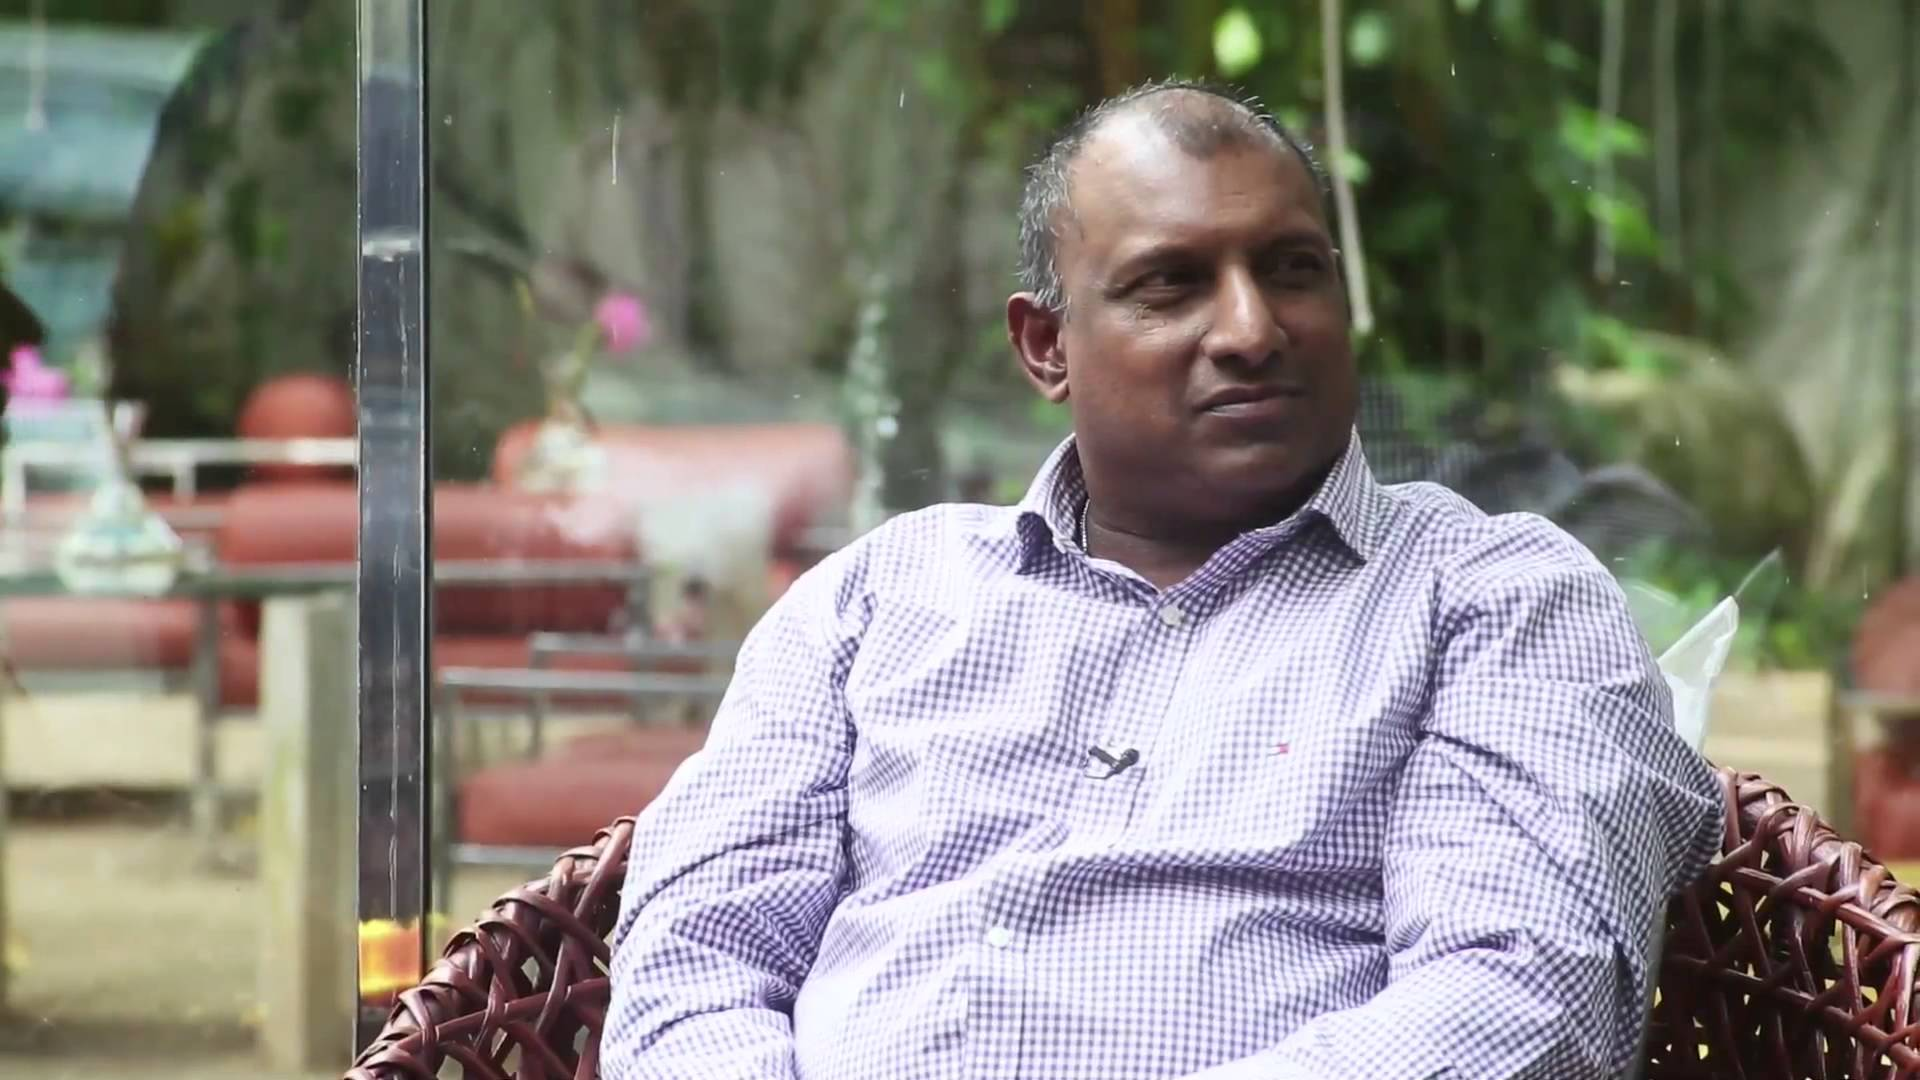 Wrist spinners will always have an impact on the game, says Aravinda de Silva